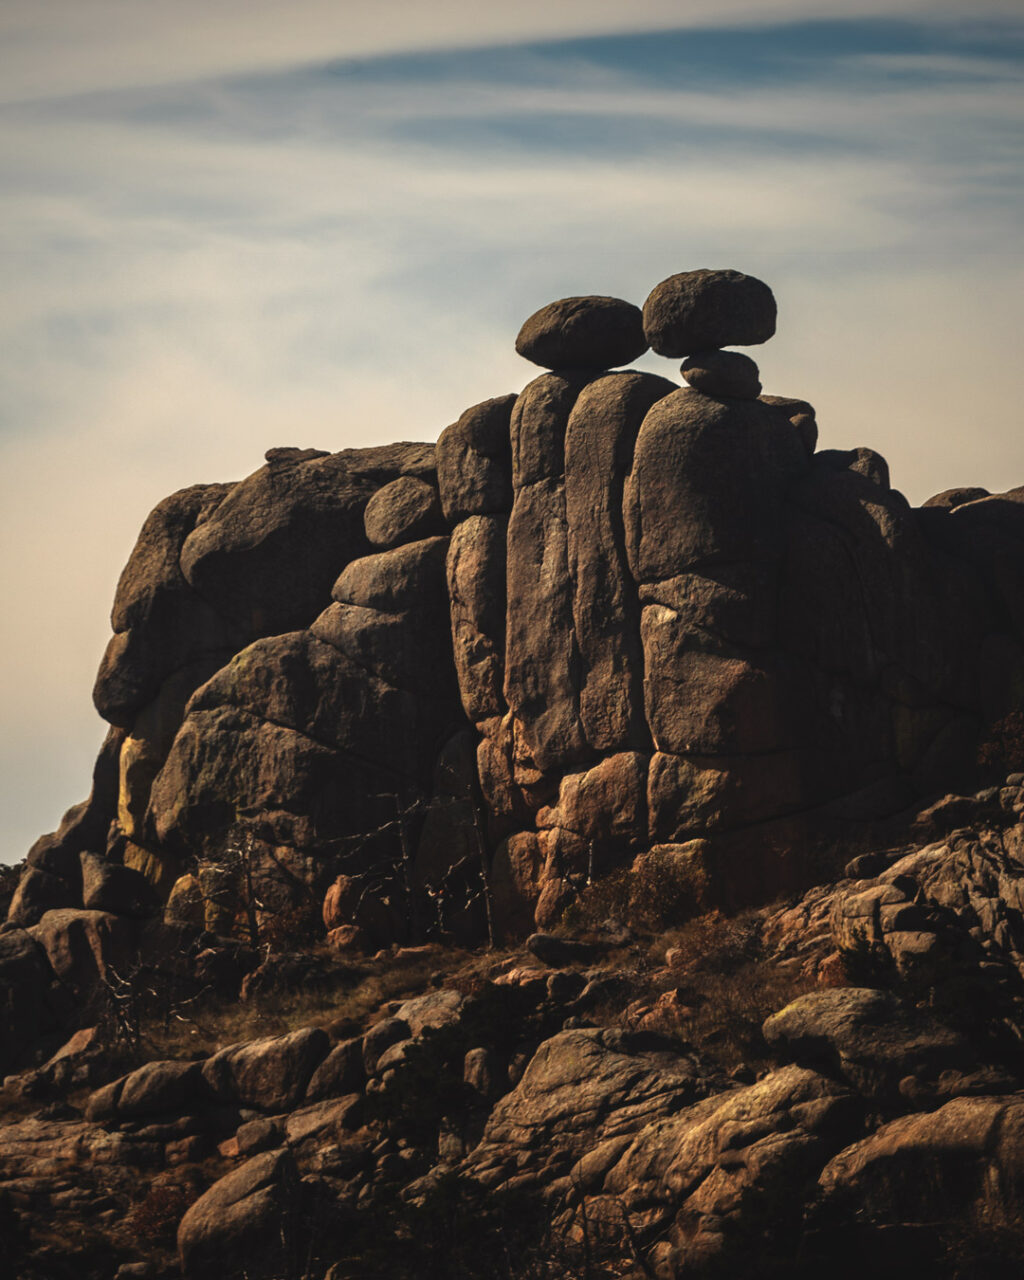 Rock formation known as Crab Eyes with two precariously-balanced boulders atop a rocky outcropping that resembles crab eyes.